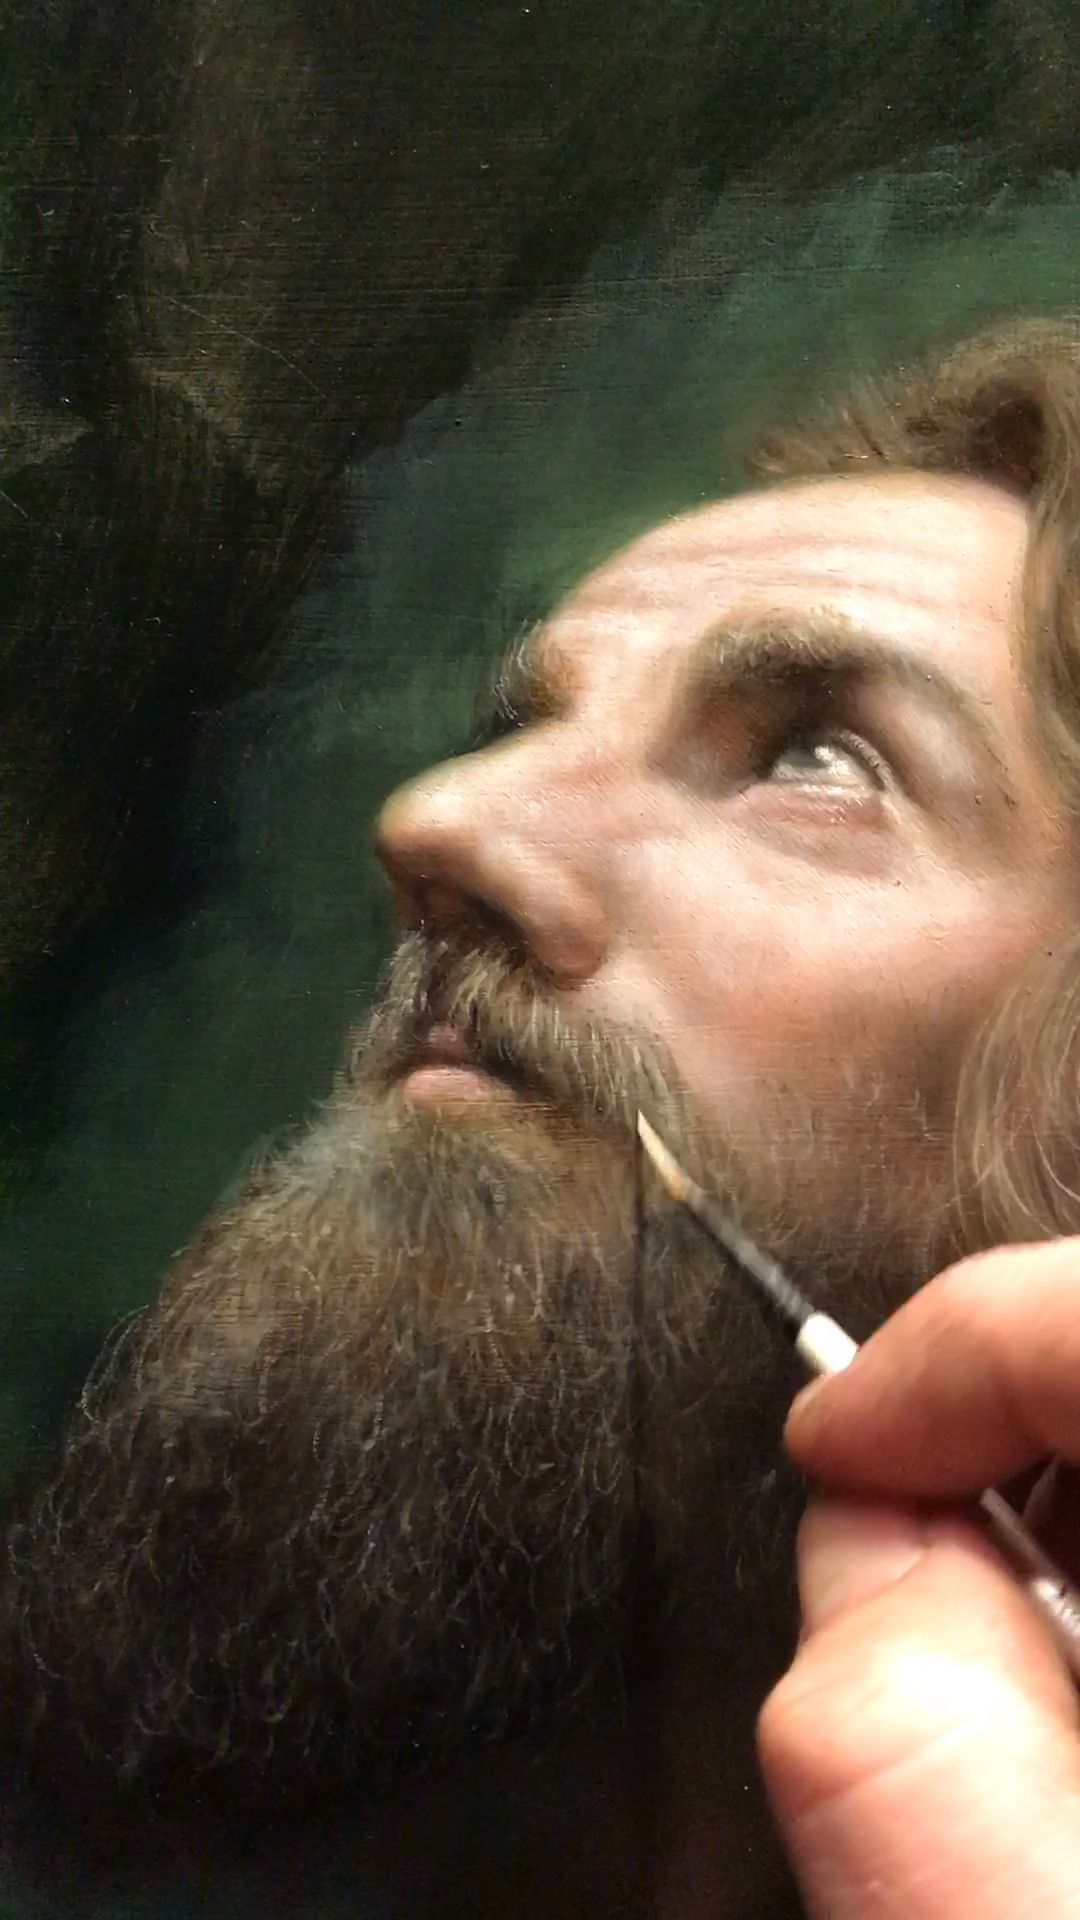 """Realistic portrait painting details of hair and face techniques and tips by classical realism artist Eric Armusik, oil paint on AlumaComp 48 x 60"""" 2018 #realistic #realism #realismart #portraitpainting #painting #paintingtips #paintingtechniques #oilpainting"""